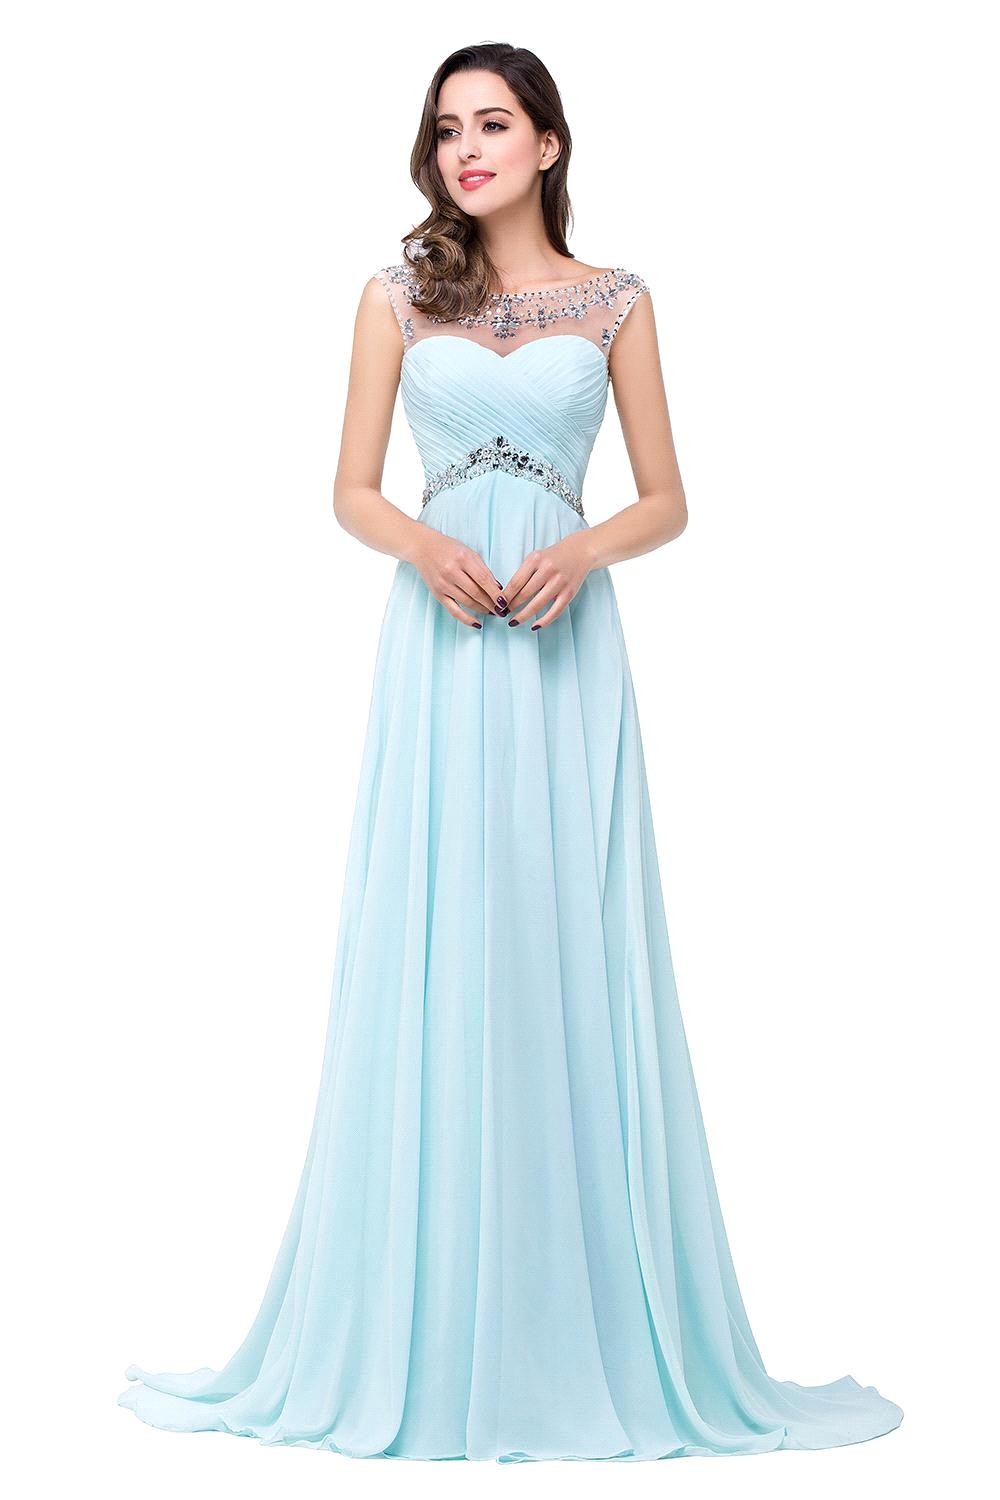 Baby Blue Prom Dress | Fashion Life